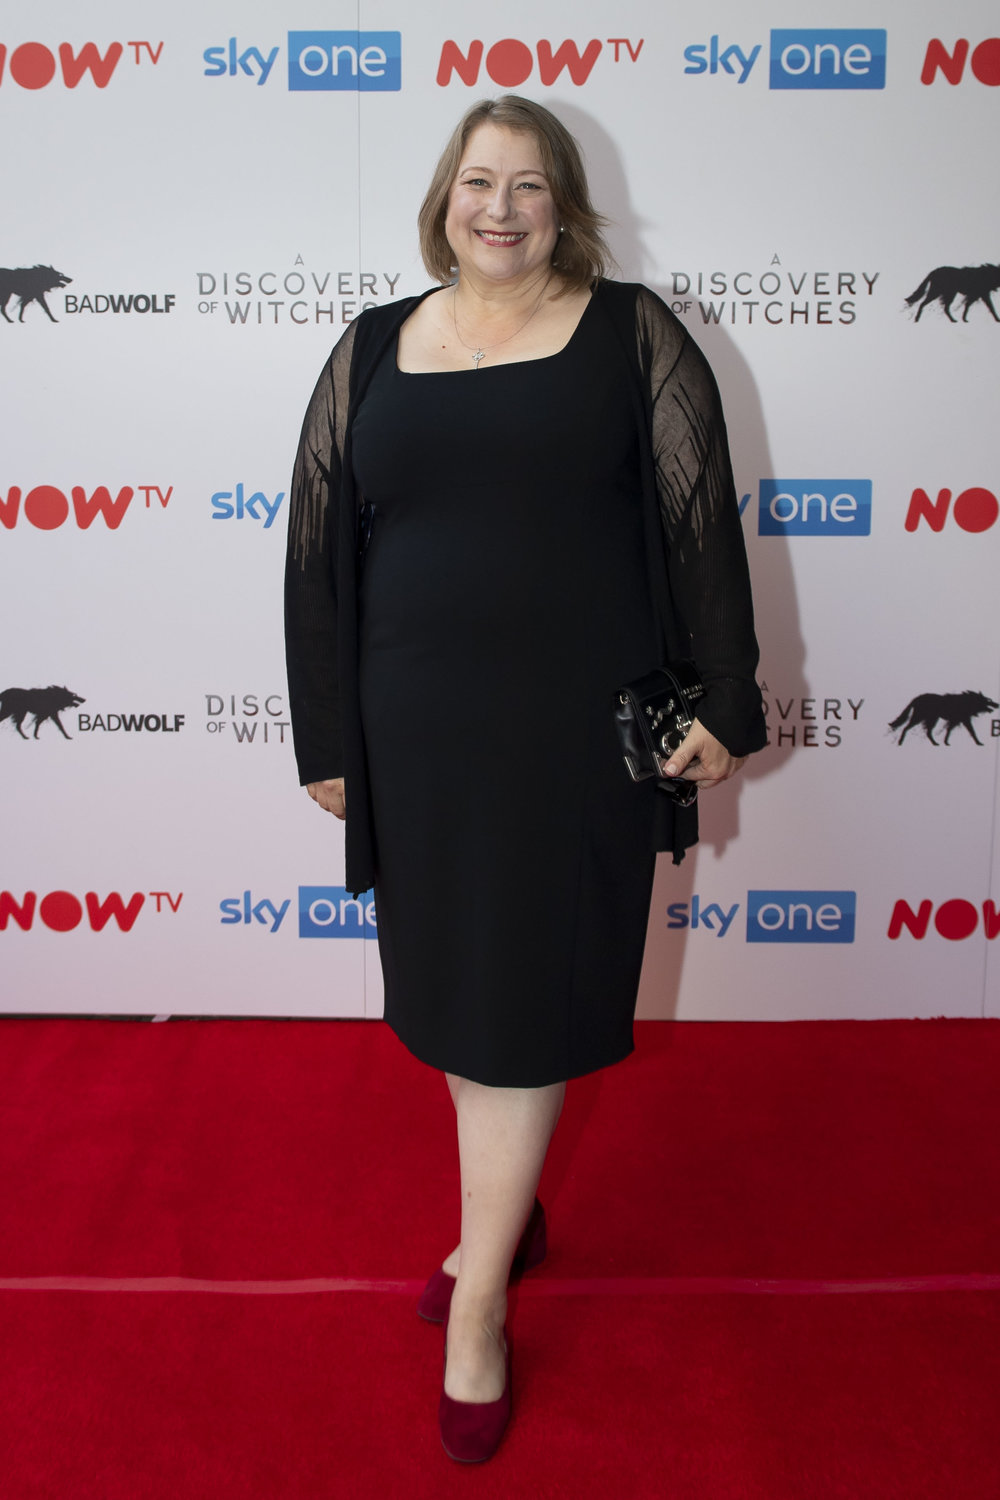 CARDIFF, WALES - SEPTEMBER 05: Author Deborah Harkness attends the UK Premiere of 'A Discovery Of Witches' at Cineworld on September 5, 2018 in Cardiff, Wales. (Photo by Matthew Horwood/Getty Images)